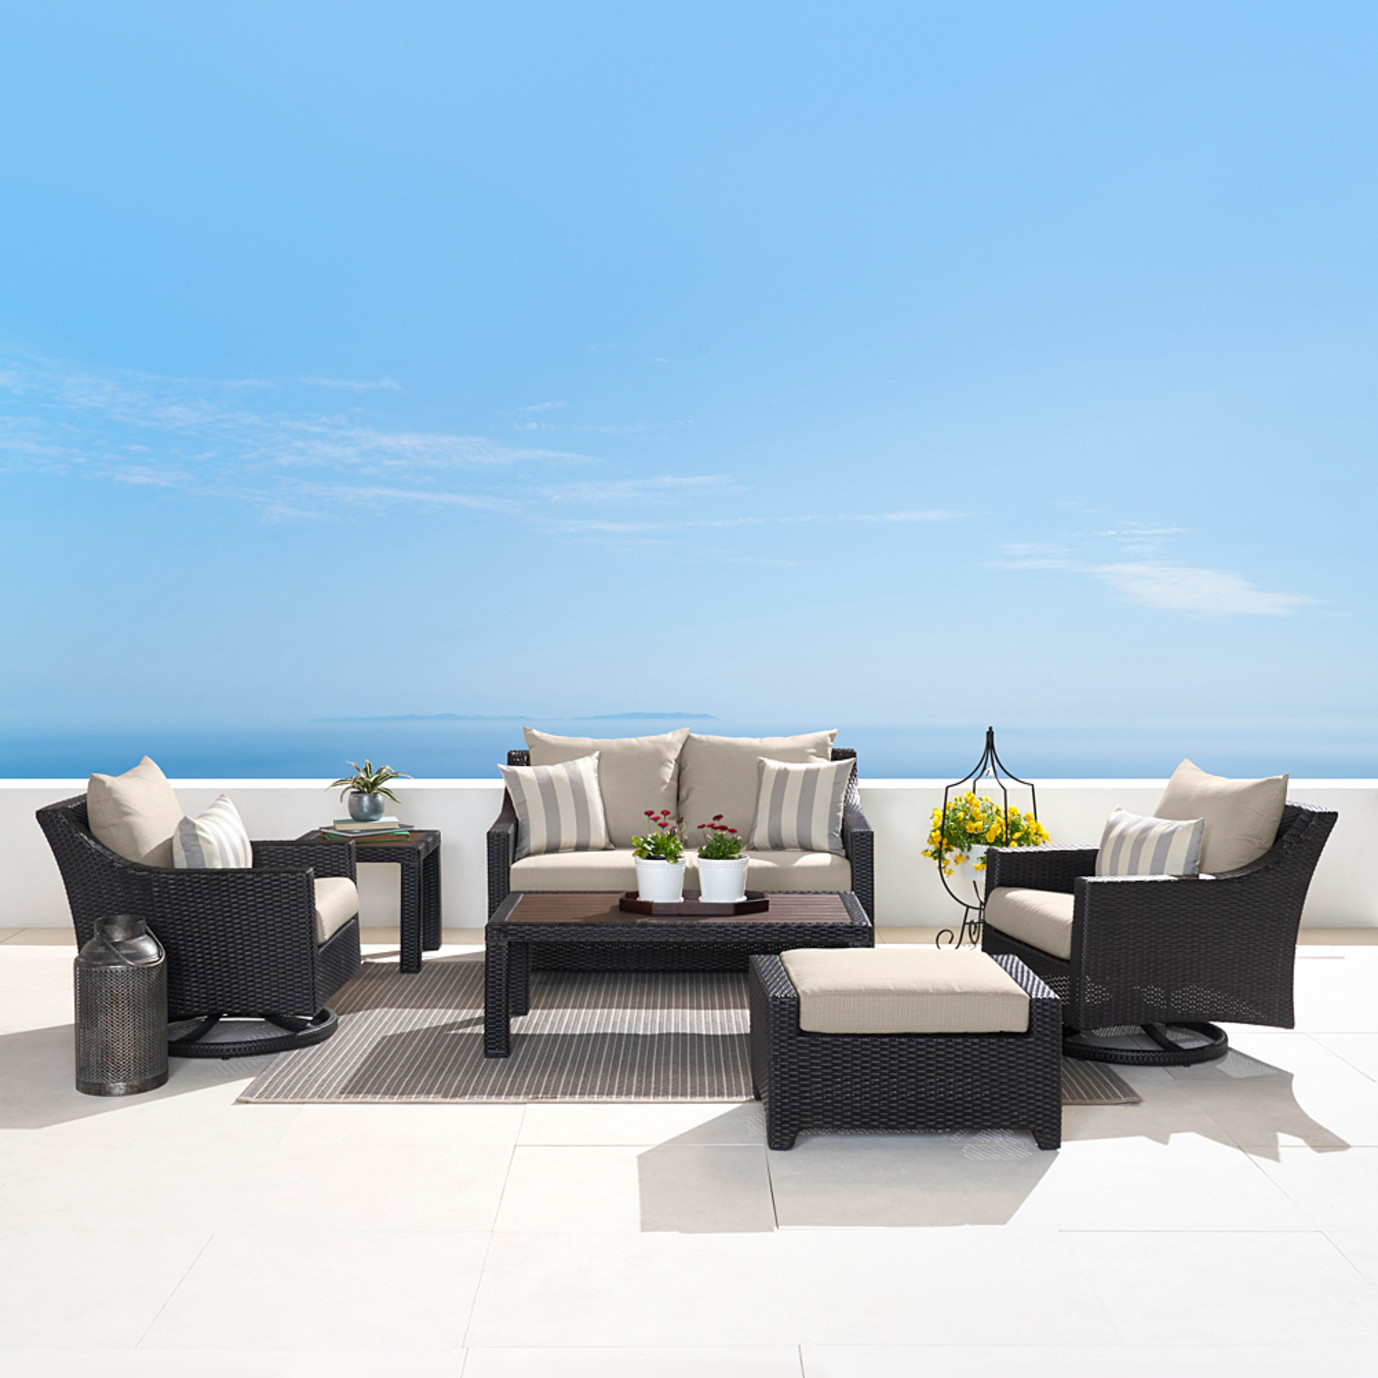 Deco Deluxe 6pc Love & Motion Club Seating Set - Slate Grey